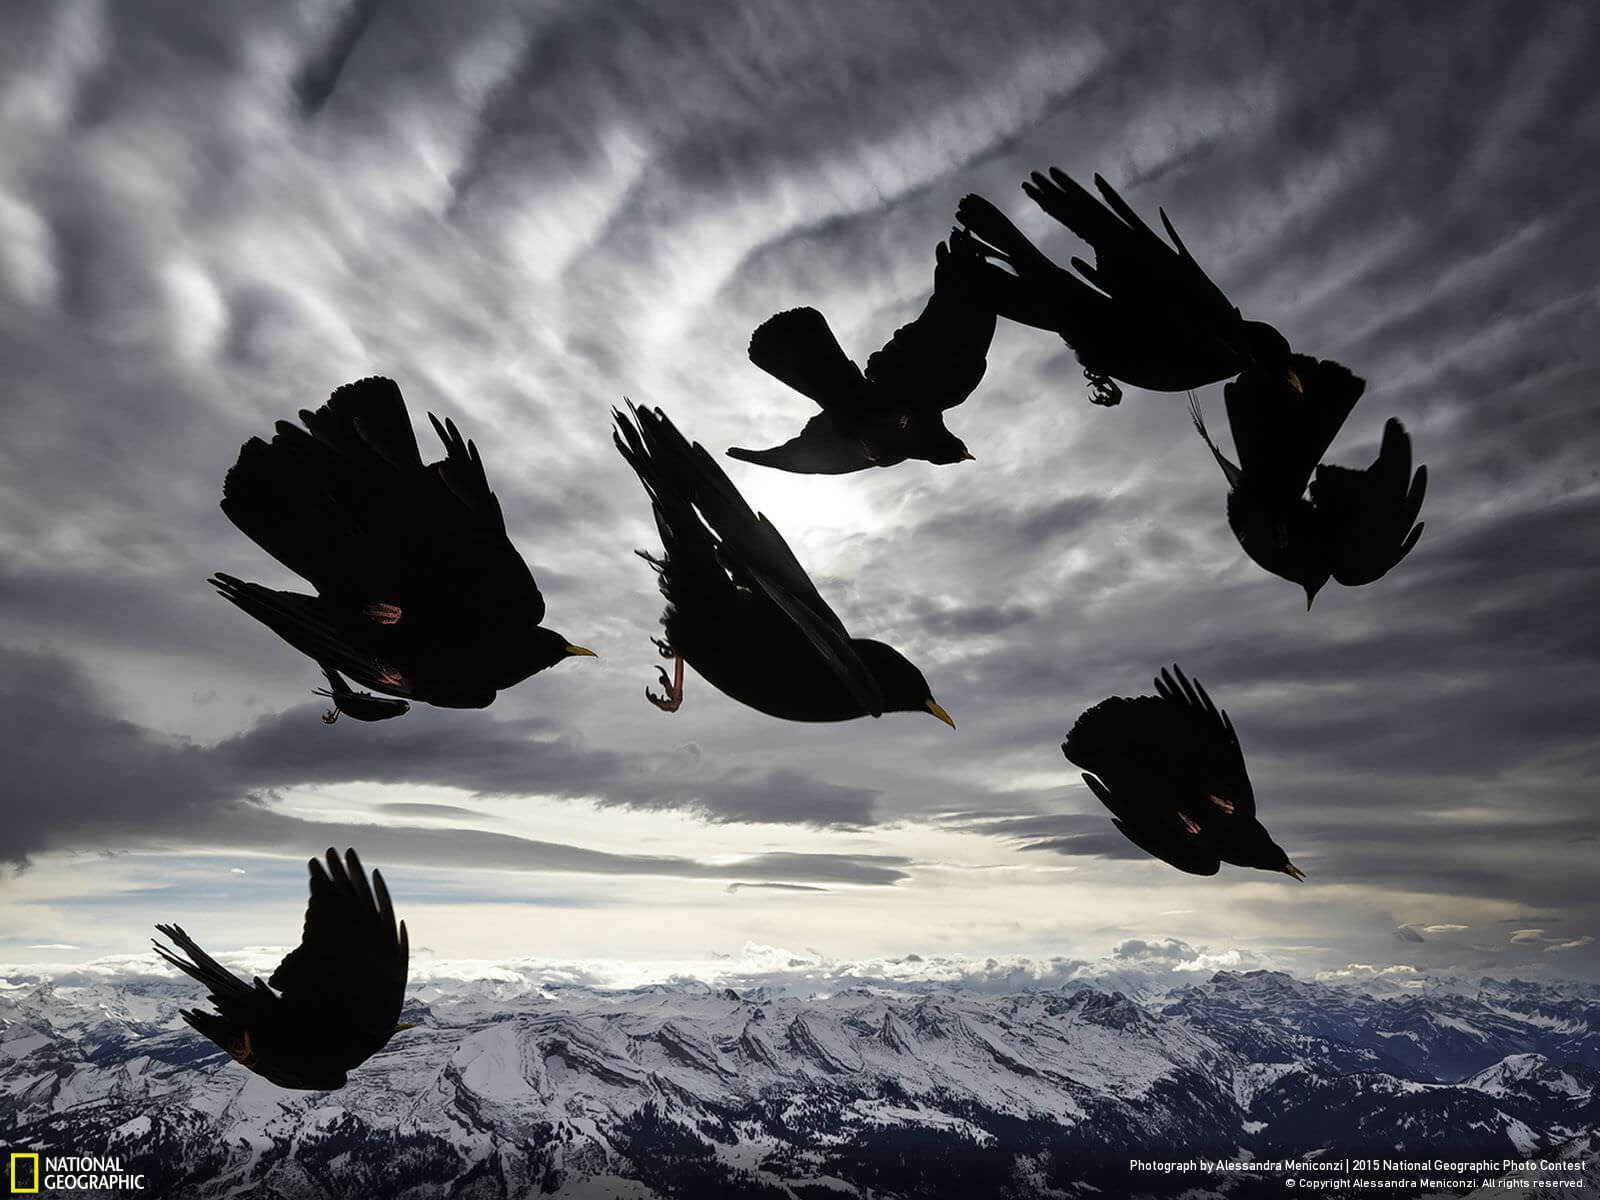 """""""Acrobats of the Air""""   """"A flock of Alpine choughs (Pyrrhocorax graculus), a species of mountain-dwelling bird, performs acrobatic displays in the air. During a windy day, I was able to immortalize their impressive flight skills.""""   Appenzell, Canton d'Appenzell Rhoden-Interieur, Switzerland   Alessandra Meniconzi"""